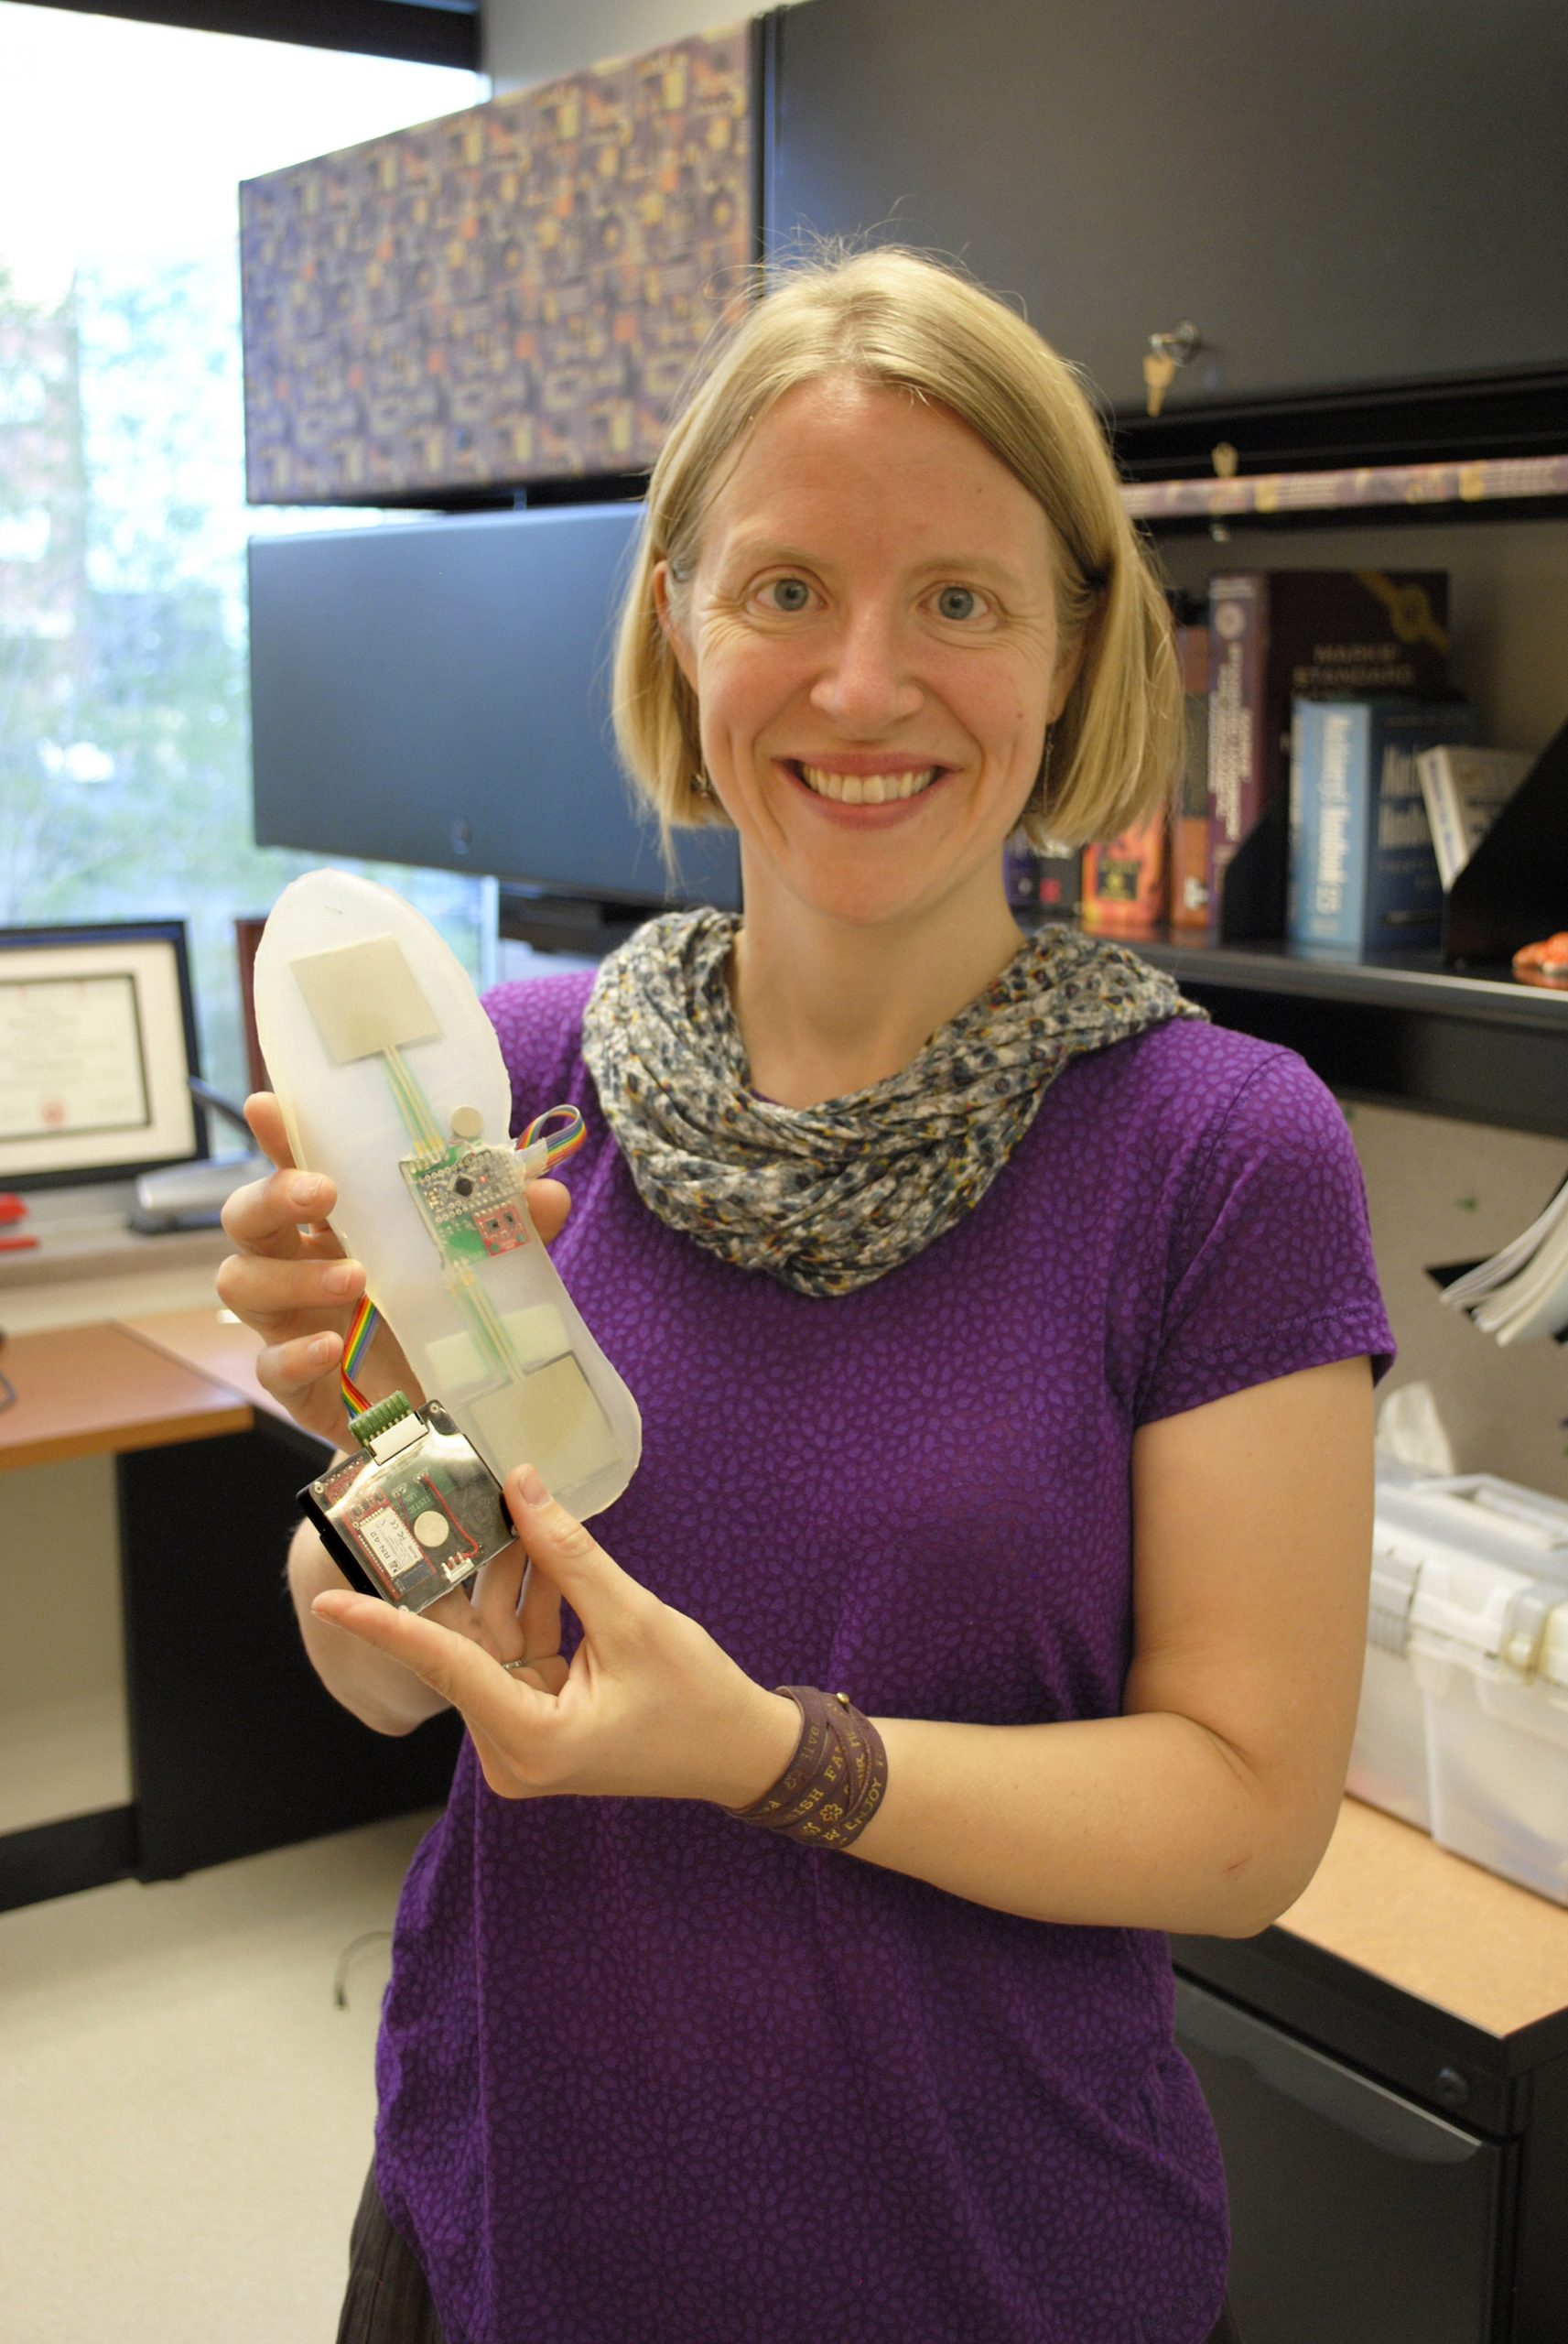 University of Utah Engineering Professor Stacy Bamberg 's Rapid Rehab system. It measures foot movement using accelerometers and gyroscopes, and provides feedback wirelessly through a smartphone application.